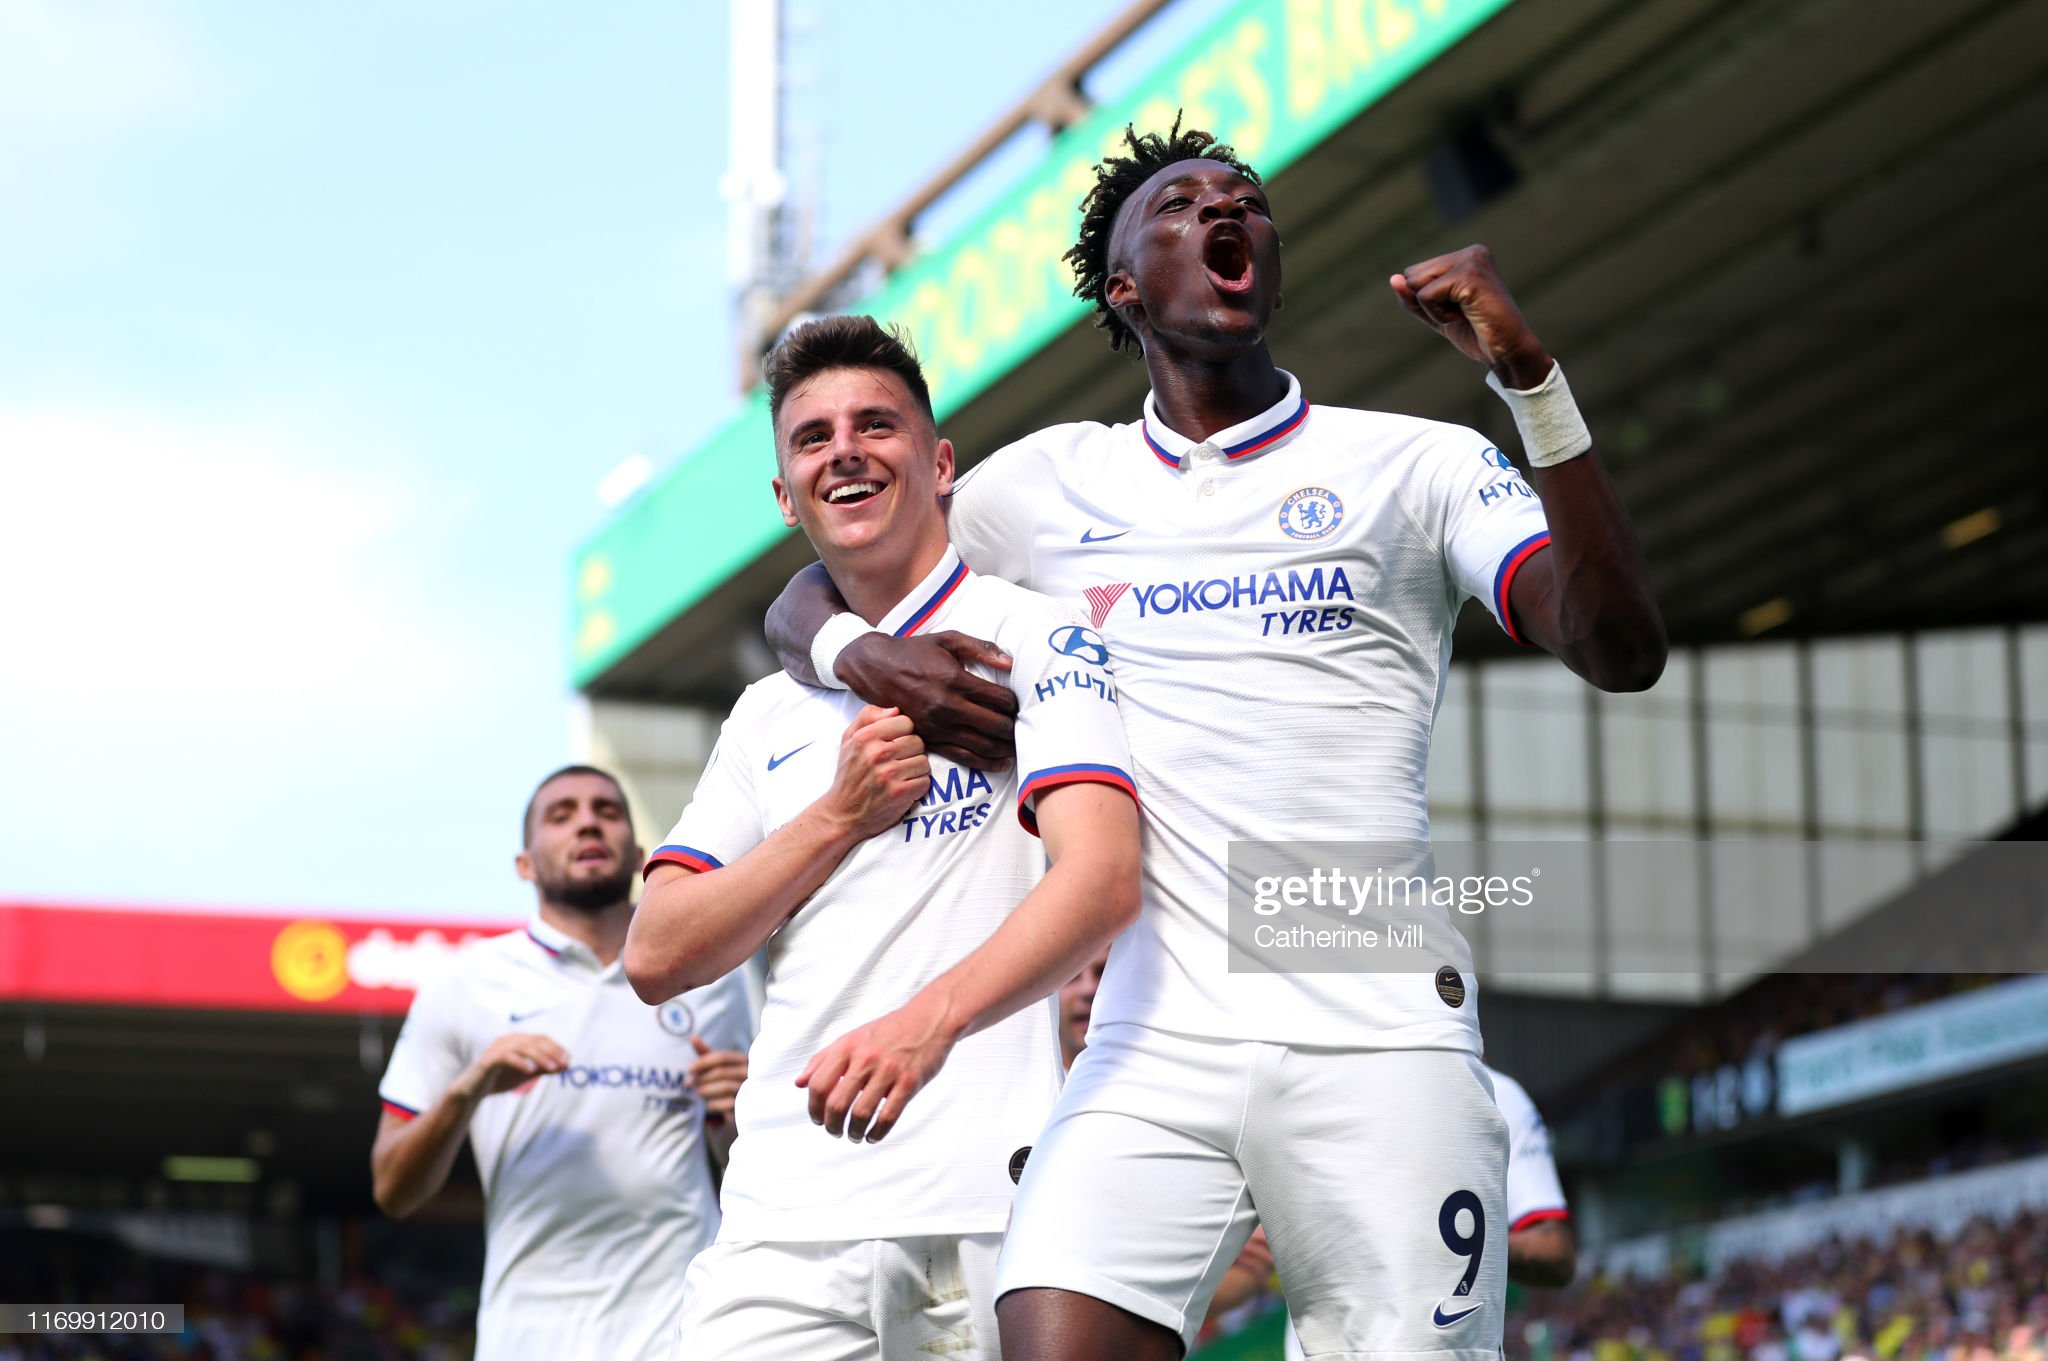 https://media.gettyimages.com/photos/mason-mount-and-tammy-abraham-of-chelsea-celebrates-after-scoring-picture-id1169912010?s=2048x2048